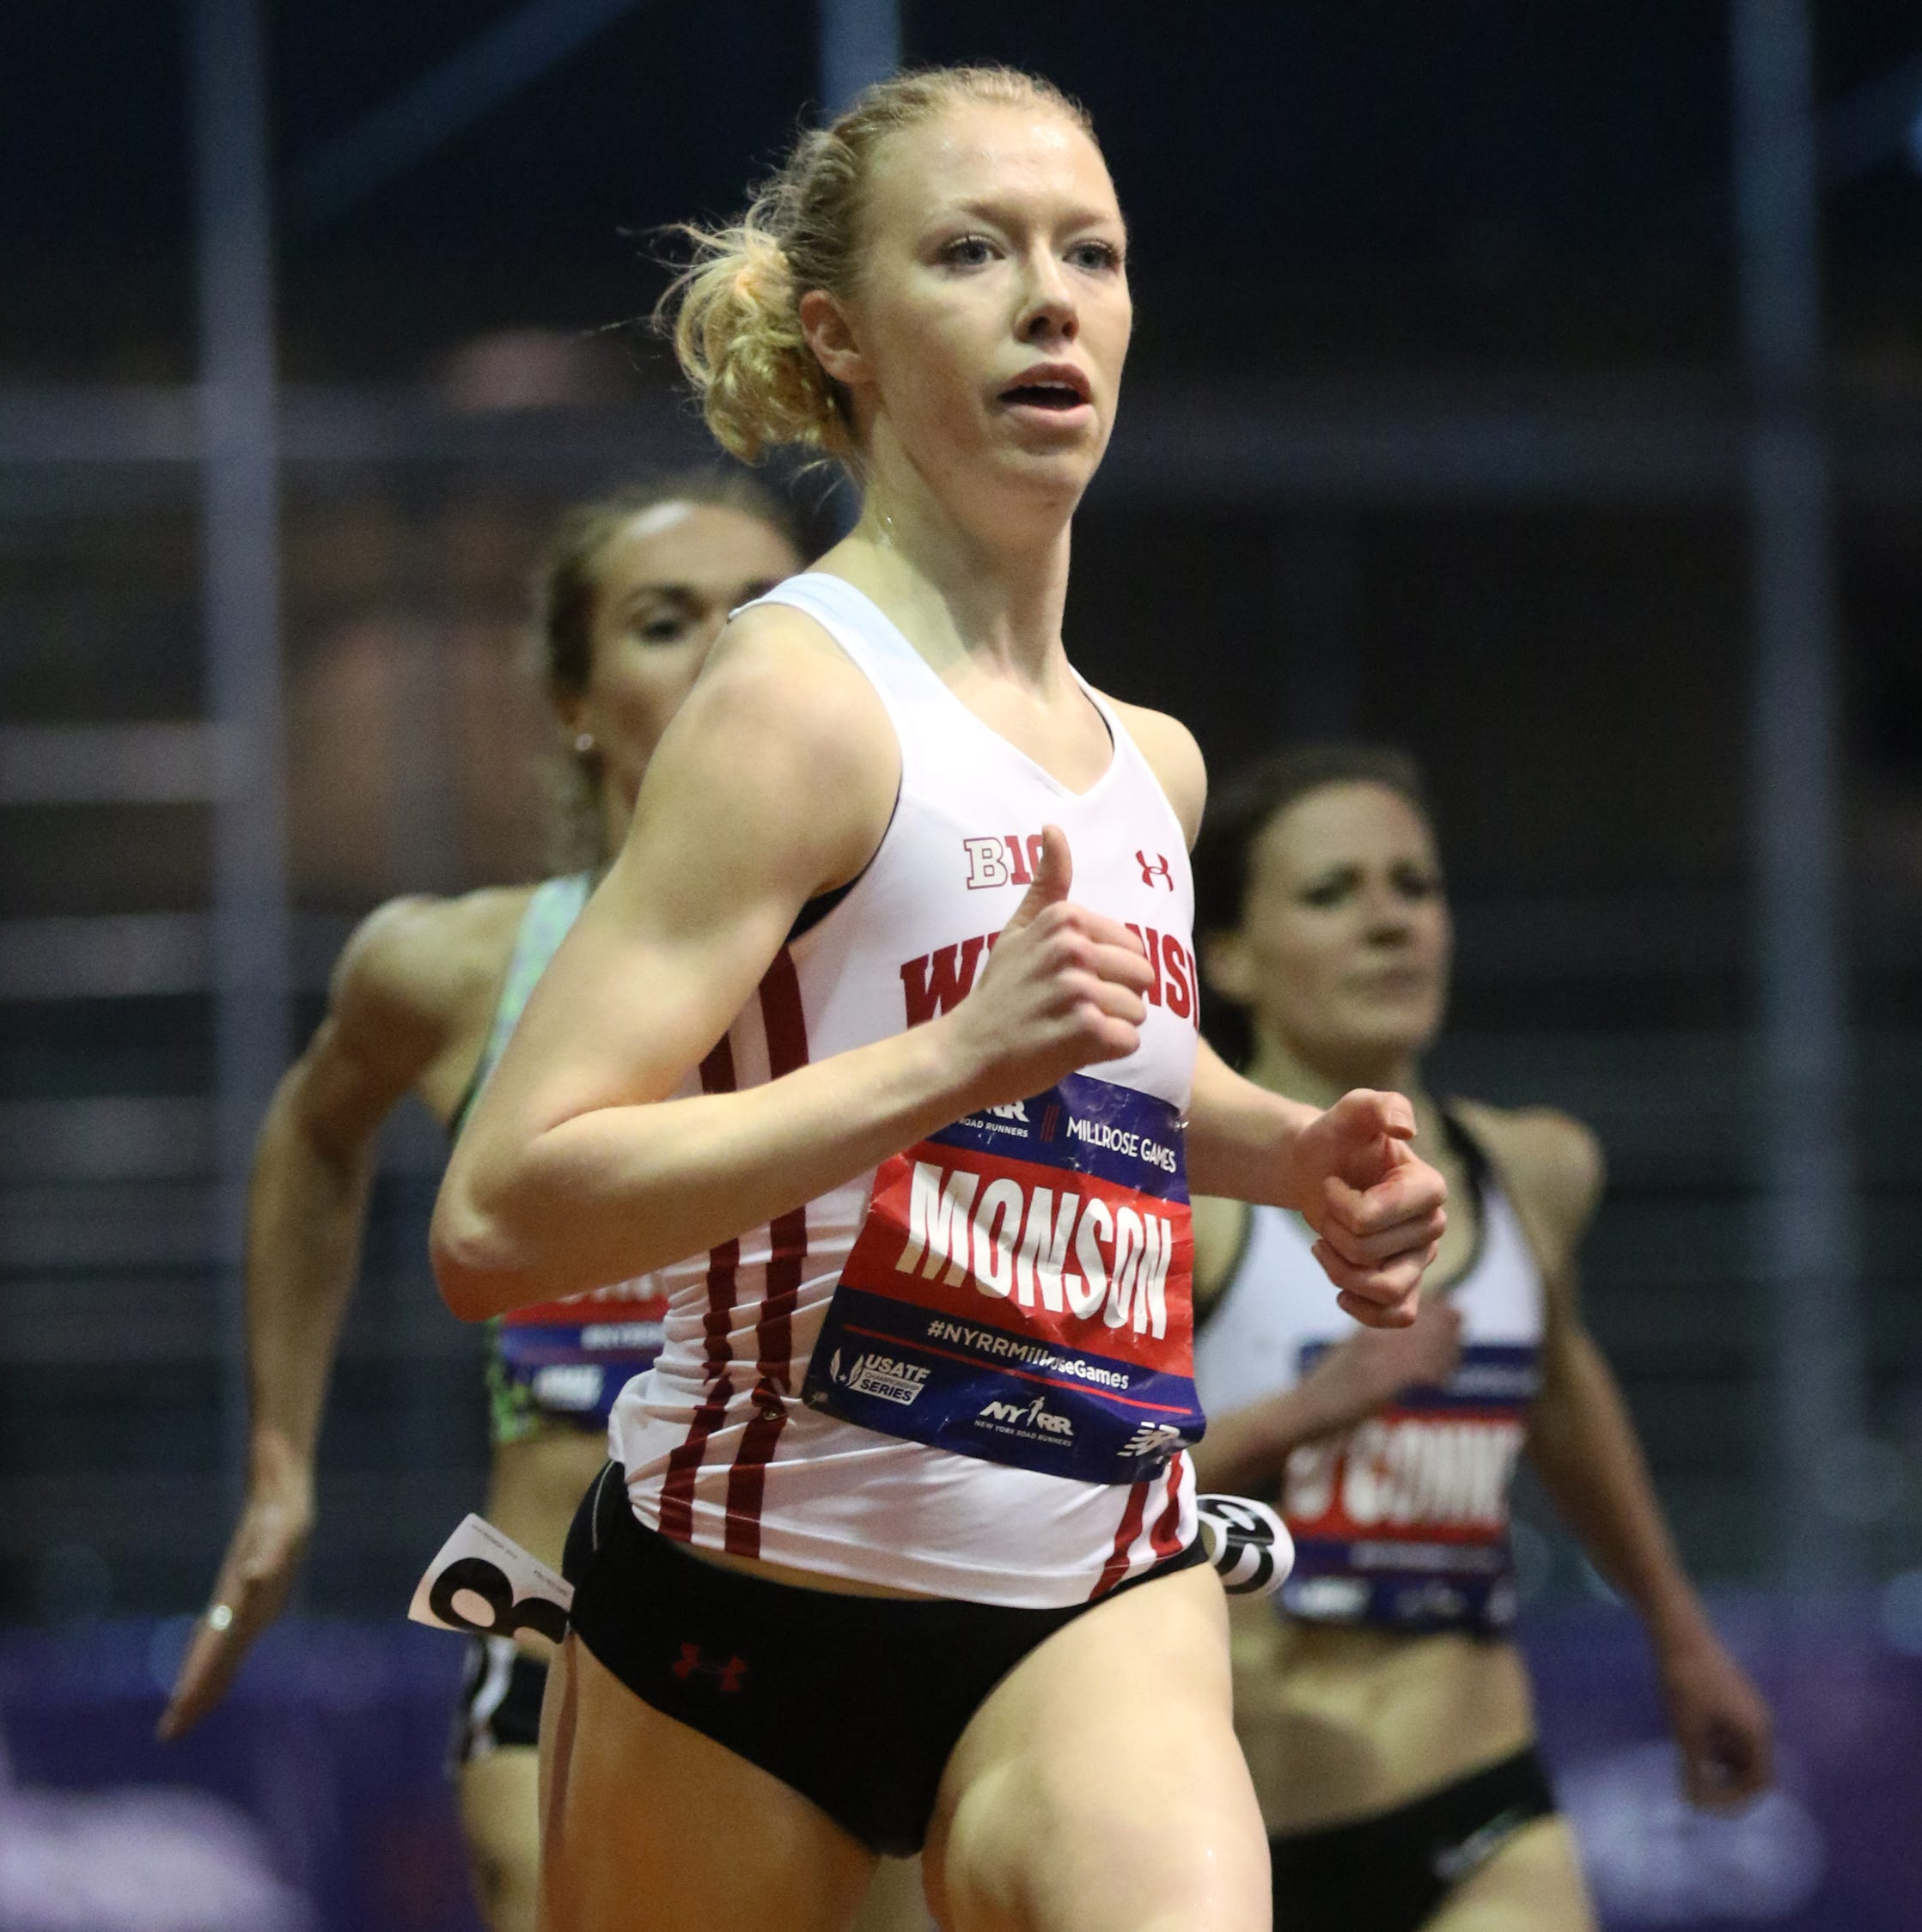 A Wisconsin runner won a Big Ten track championship while shouting encouragement to her teammate